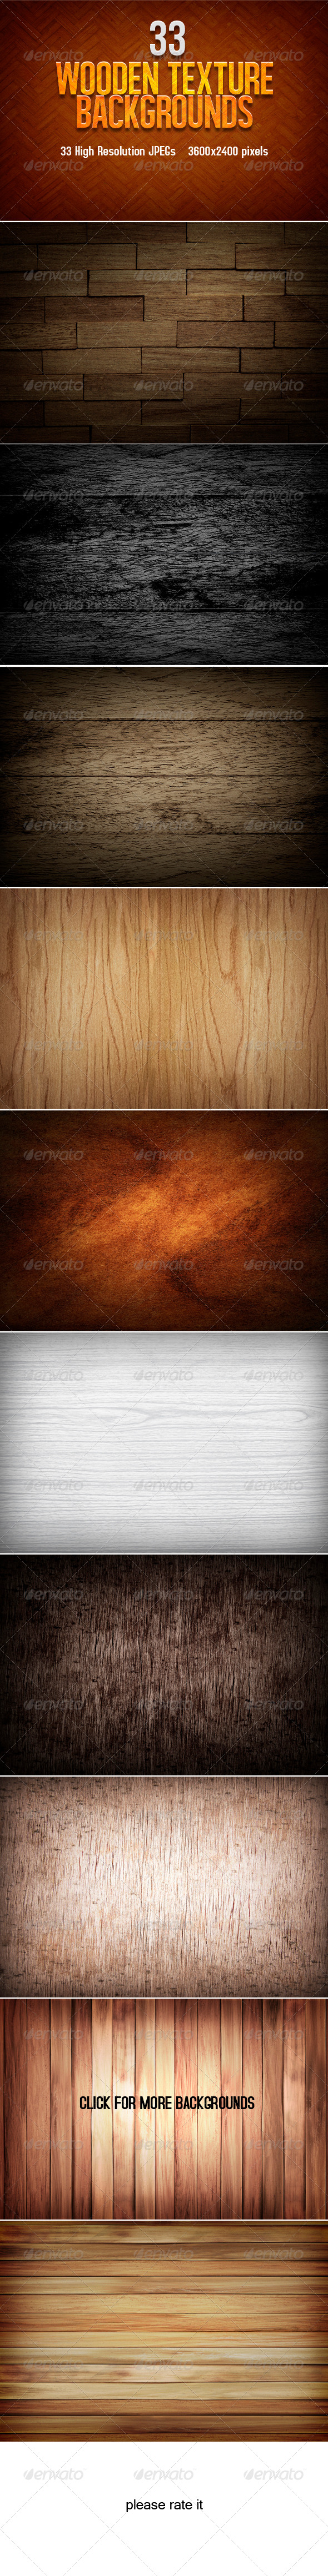 GraphicRiver Wooden Texture Backgrounds 4151766